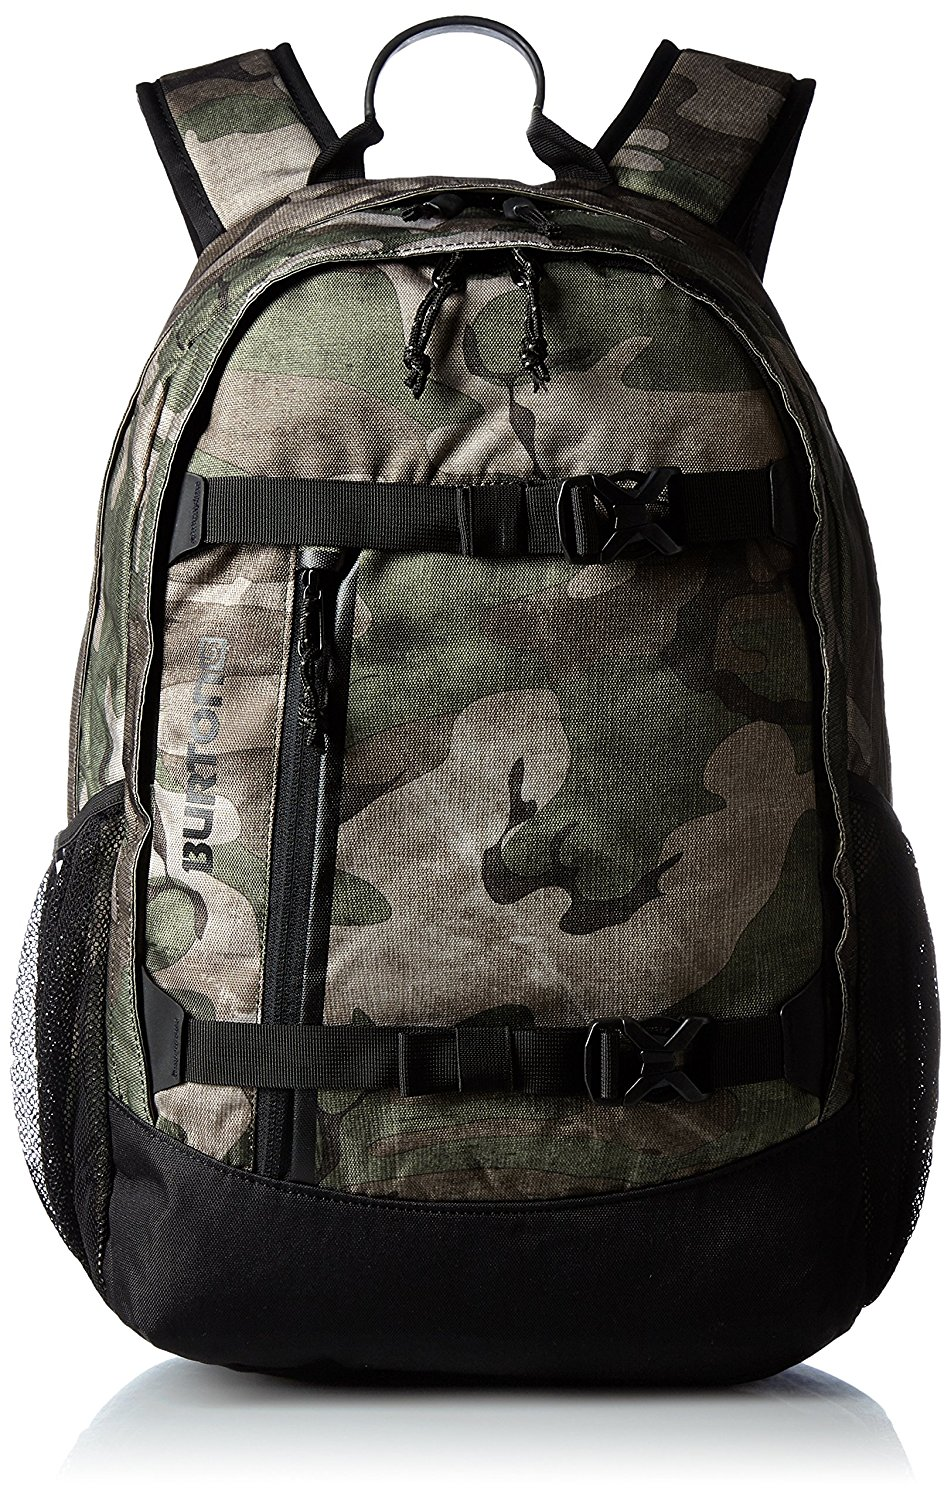 54f89a5d94863 Buy Burton Day Hiker Backpack 25L - Rasta in Cheap Price on Alibaba.com